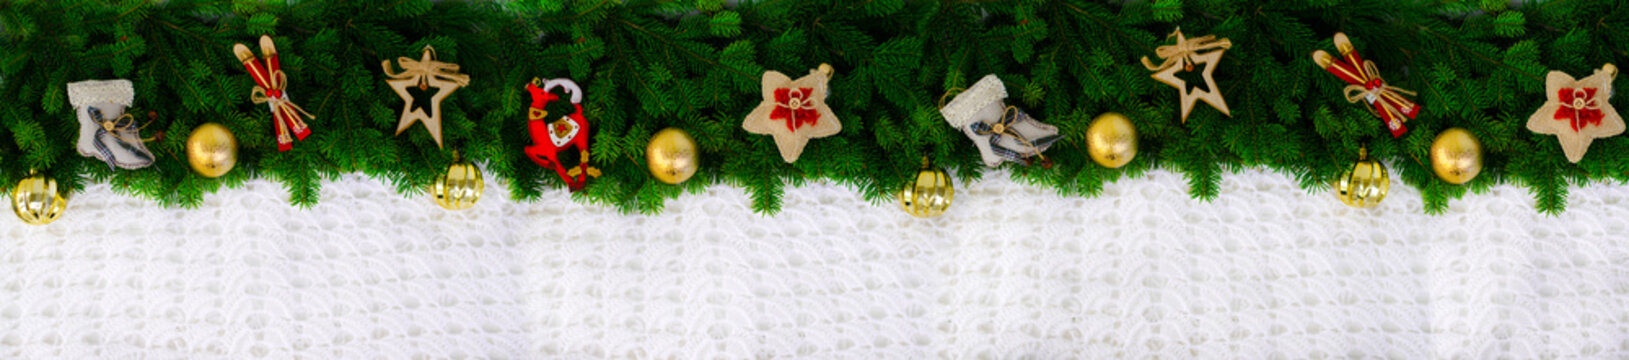 Christmas long banner made of fir branches with decorative wooden and textile toys, as well as golden balls. Knitted jersey. Top view, flat lay. Copy space